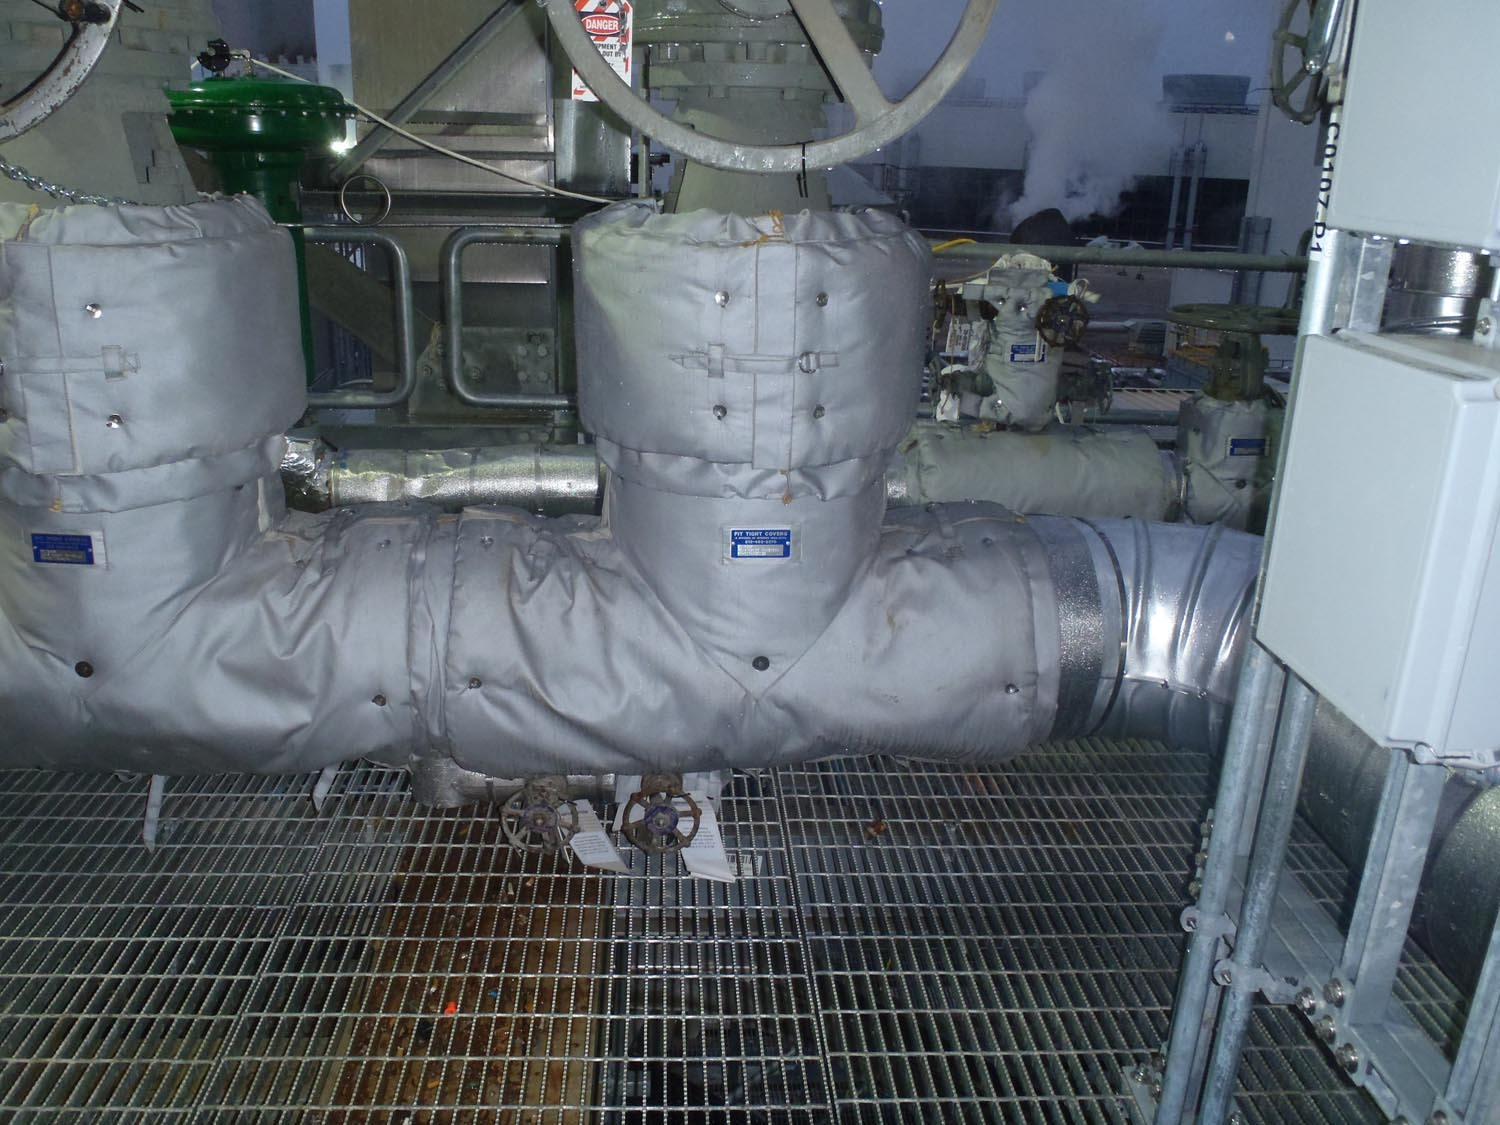 Valve Insulation Covers Fit Tight Covers